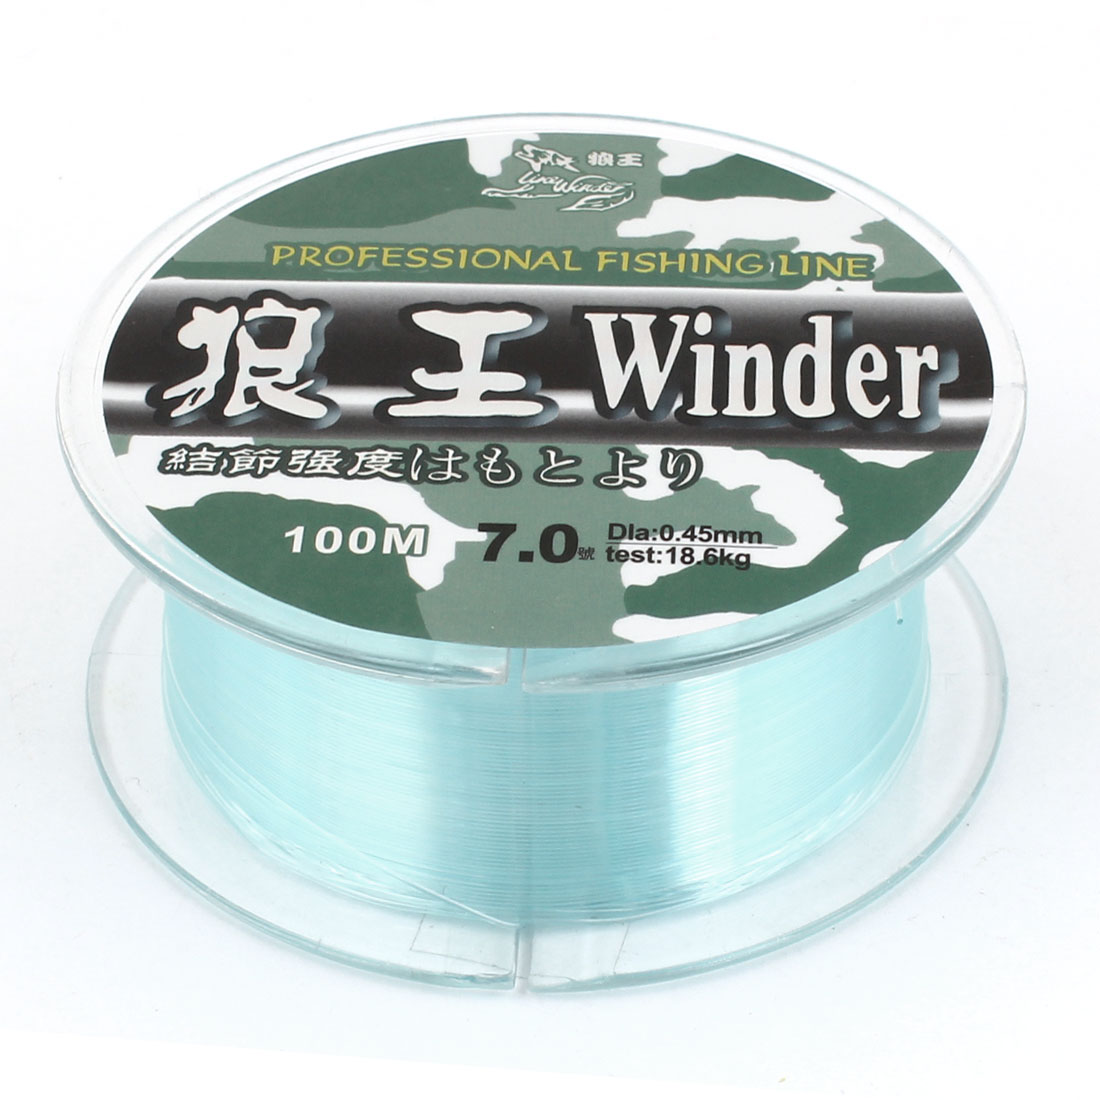 7.0# 0.45mm Diameter 100M Thread 18.6Kg 41 lb Fishing Line Spool Green